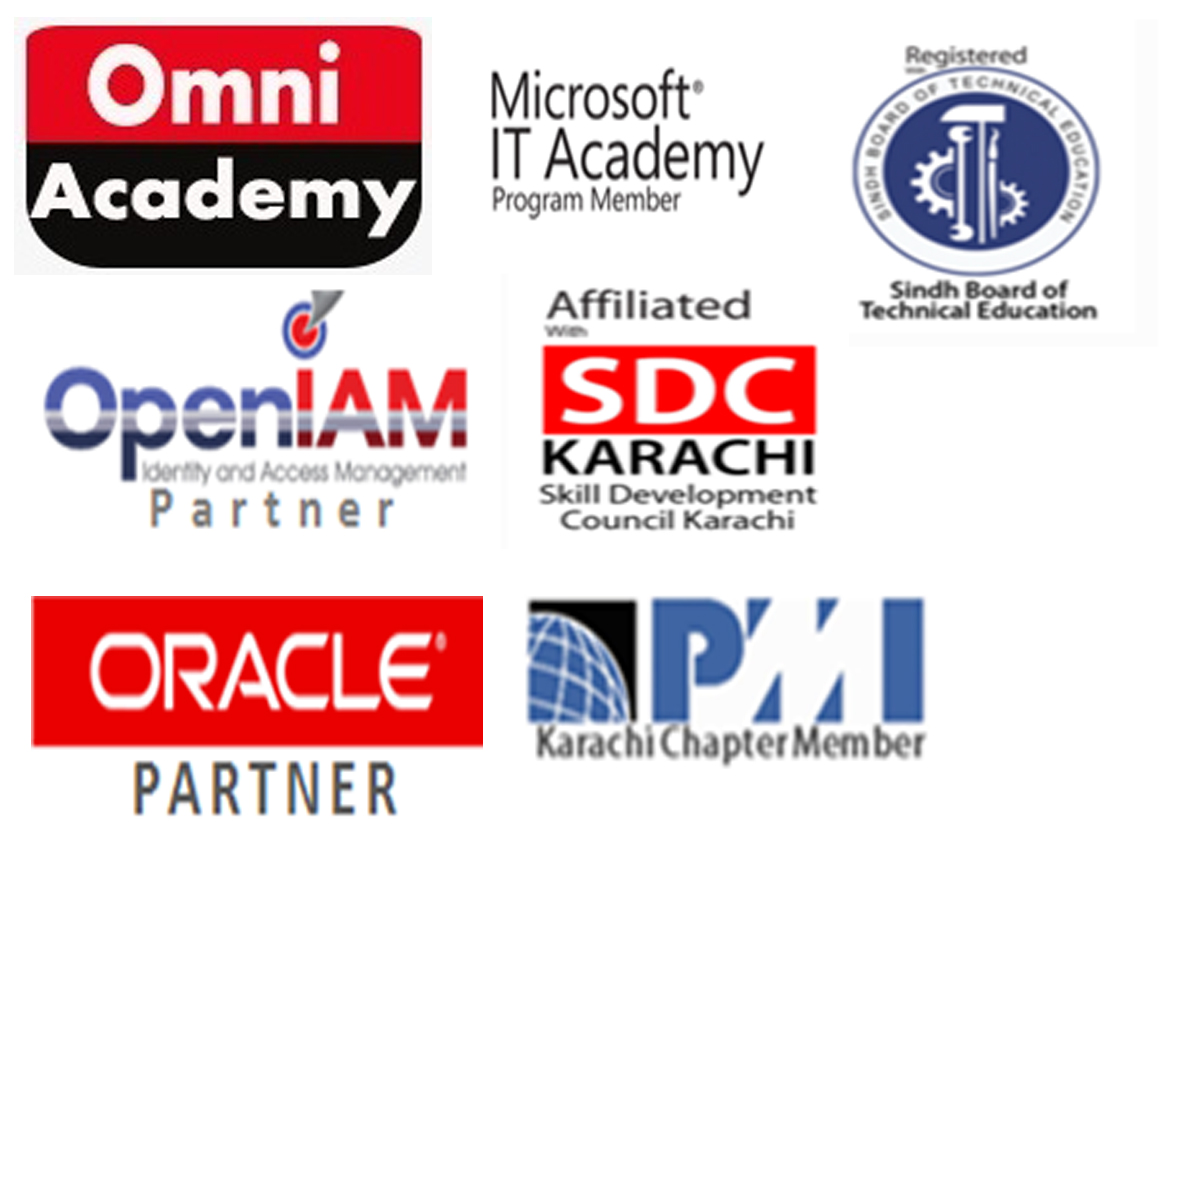 OMNI ACADEMY - TRAINING CONSULTING  DIGITAL MARKETING - KARACHI PAKISTAN